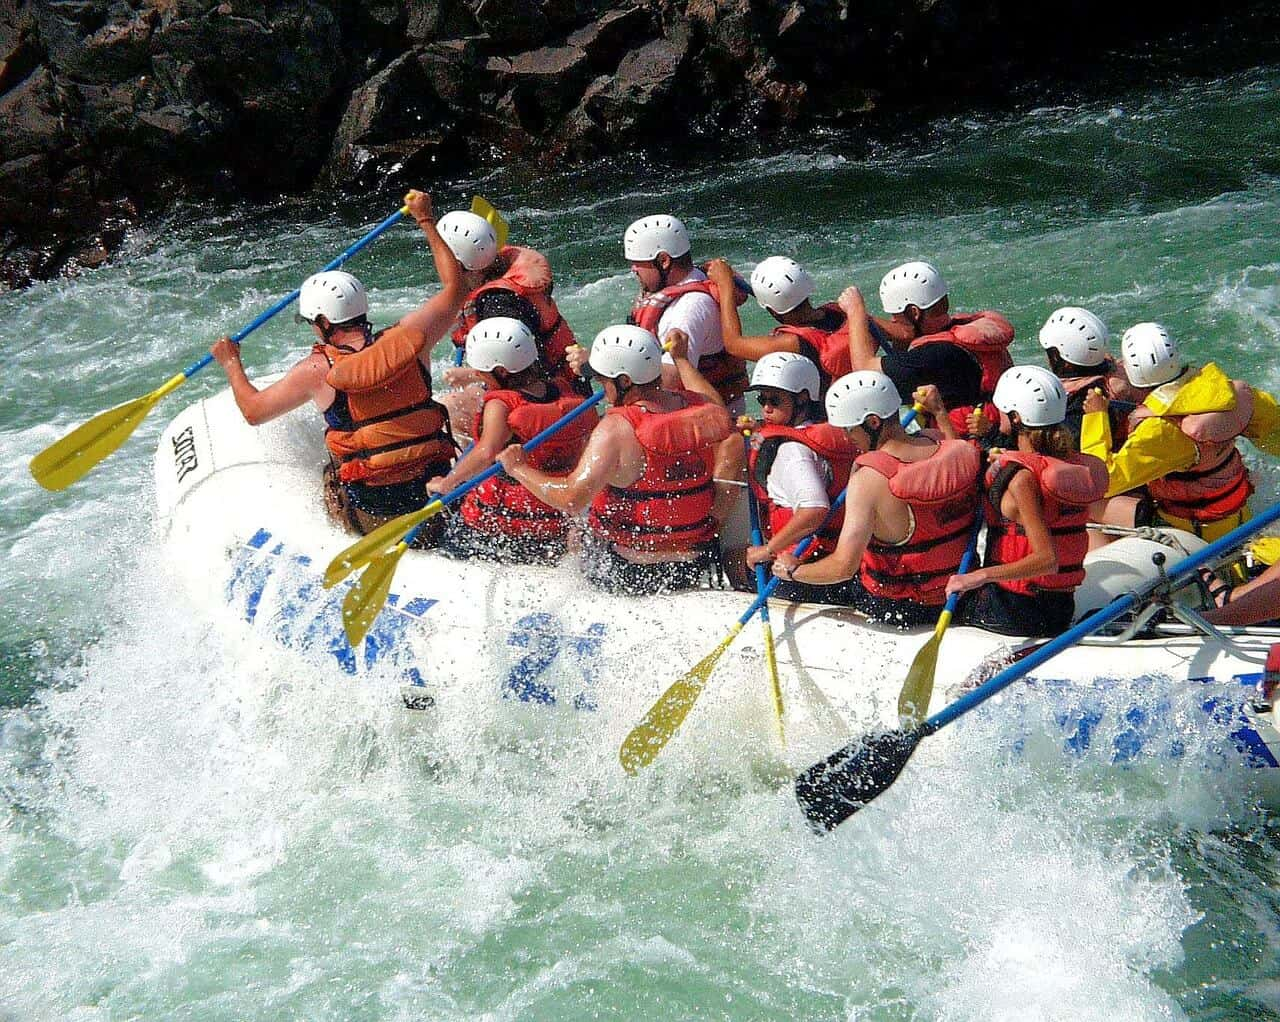 Stag Party Ideas - Rafting